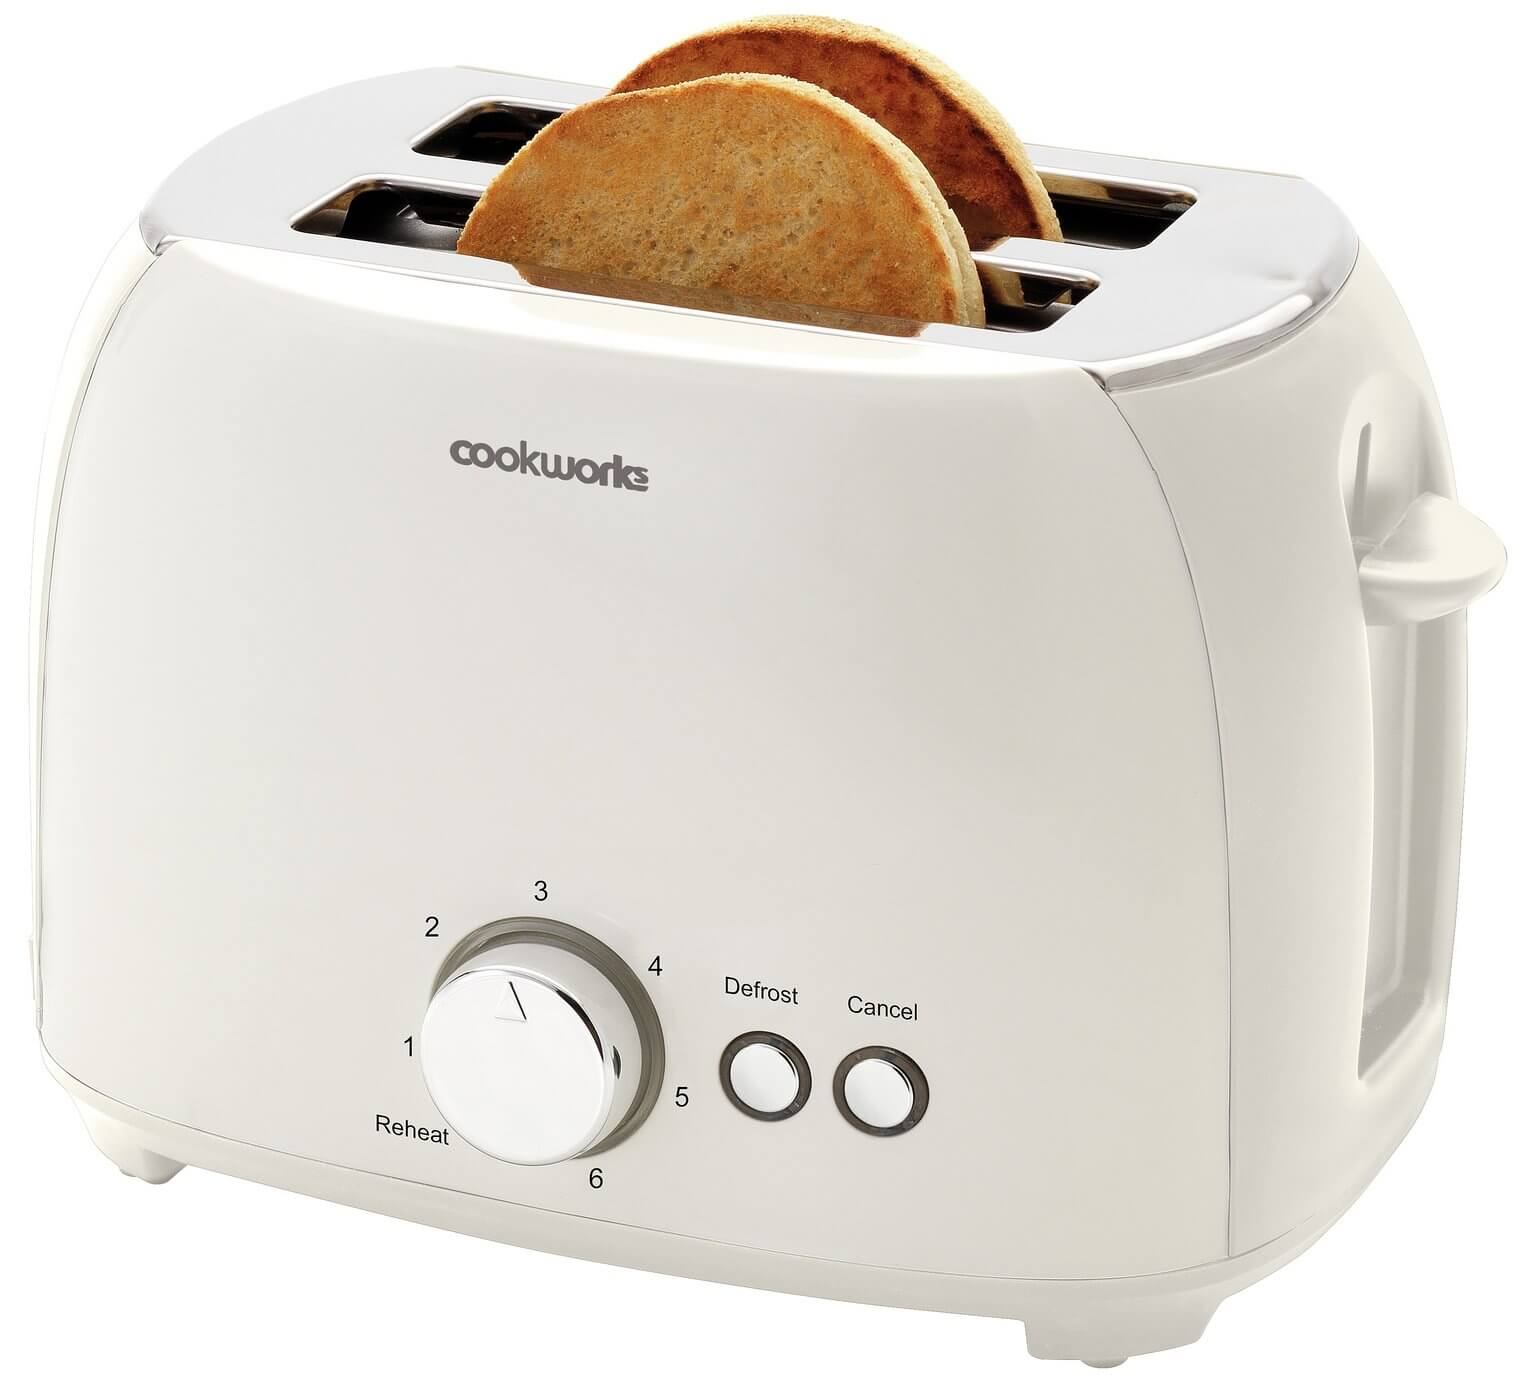 Cookworks 2 Slice Toaster – White